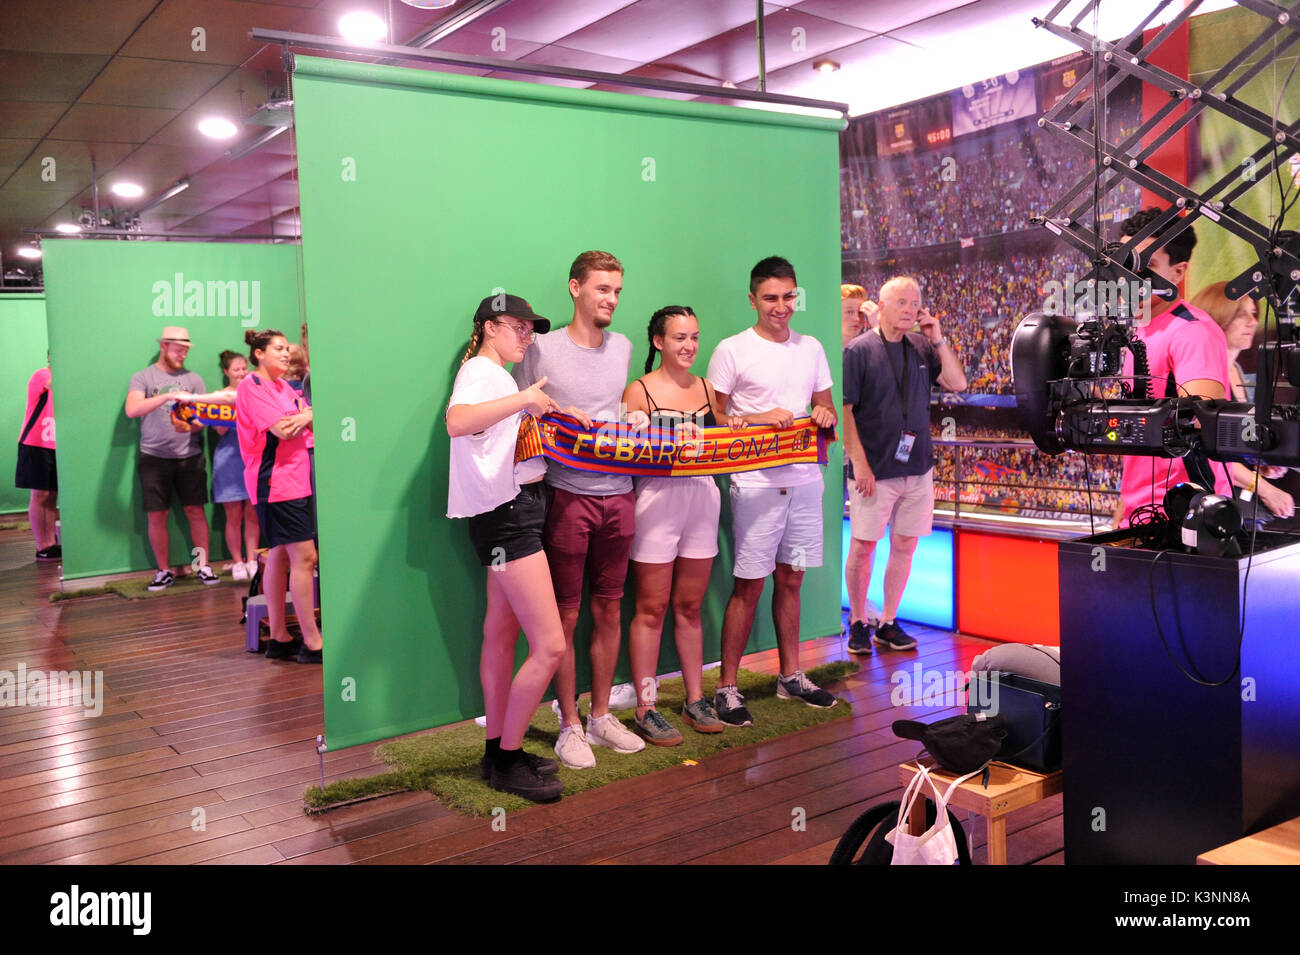 Photoshoot at the FC Barcelona Museum and Nou camp stadium tour. Stock Photo